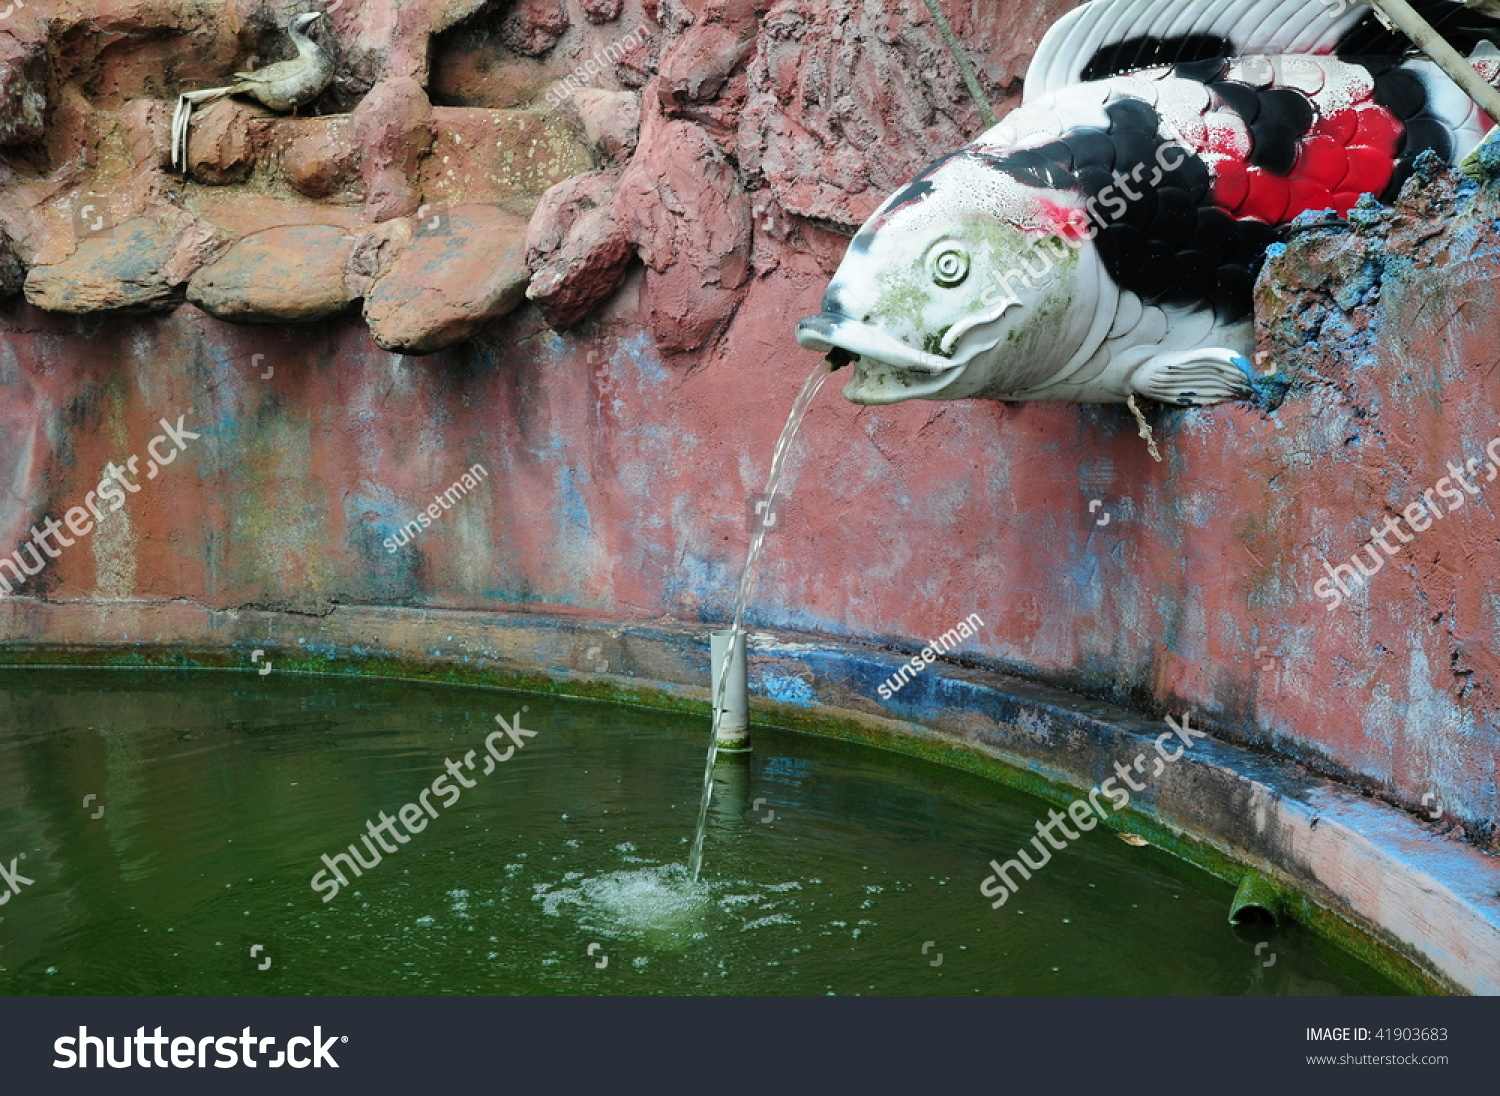 Koi fish water feature stock photo 41903683 shutterstock for Koi fish in water